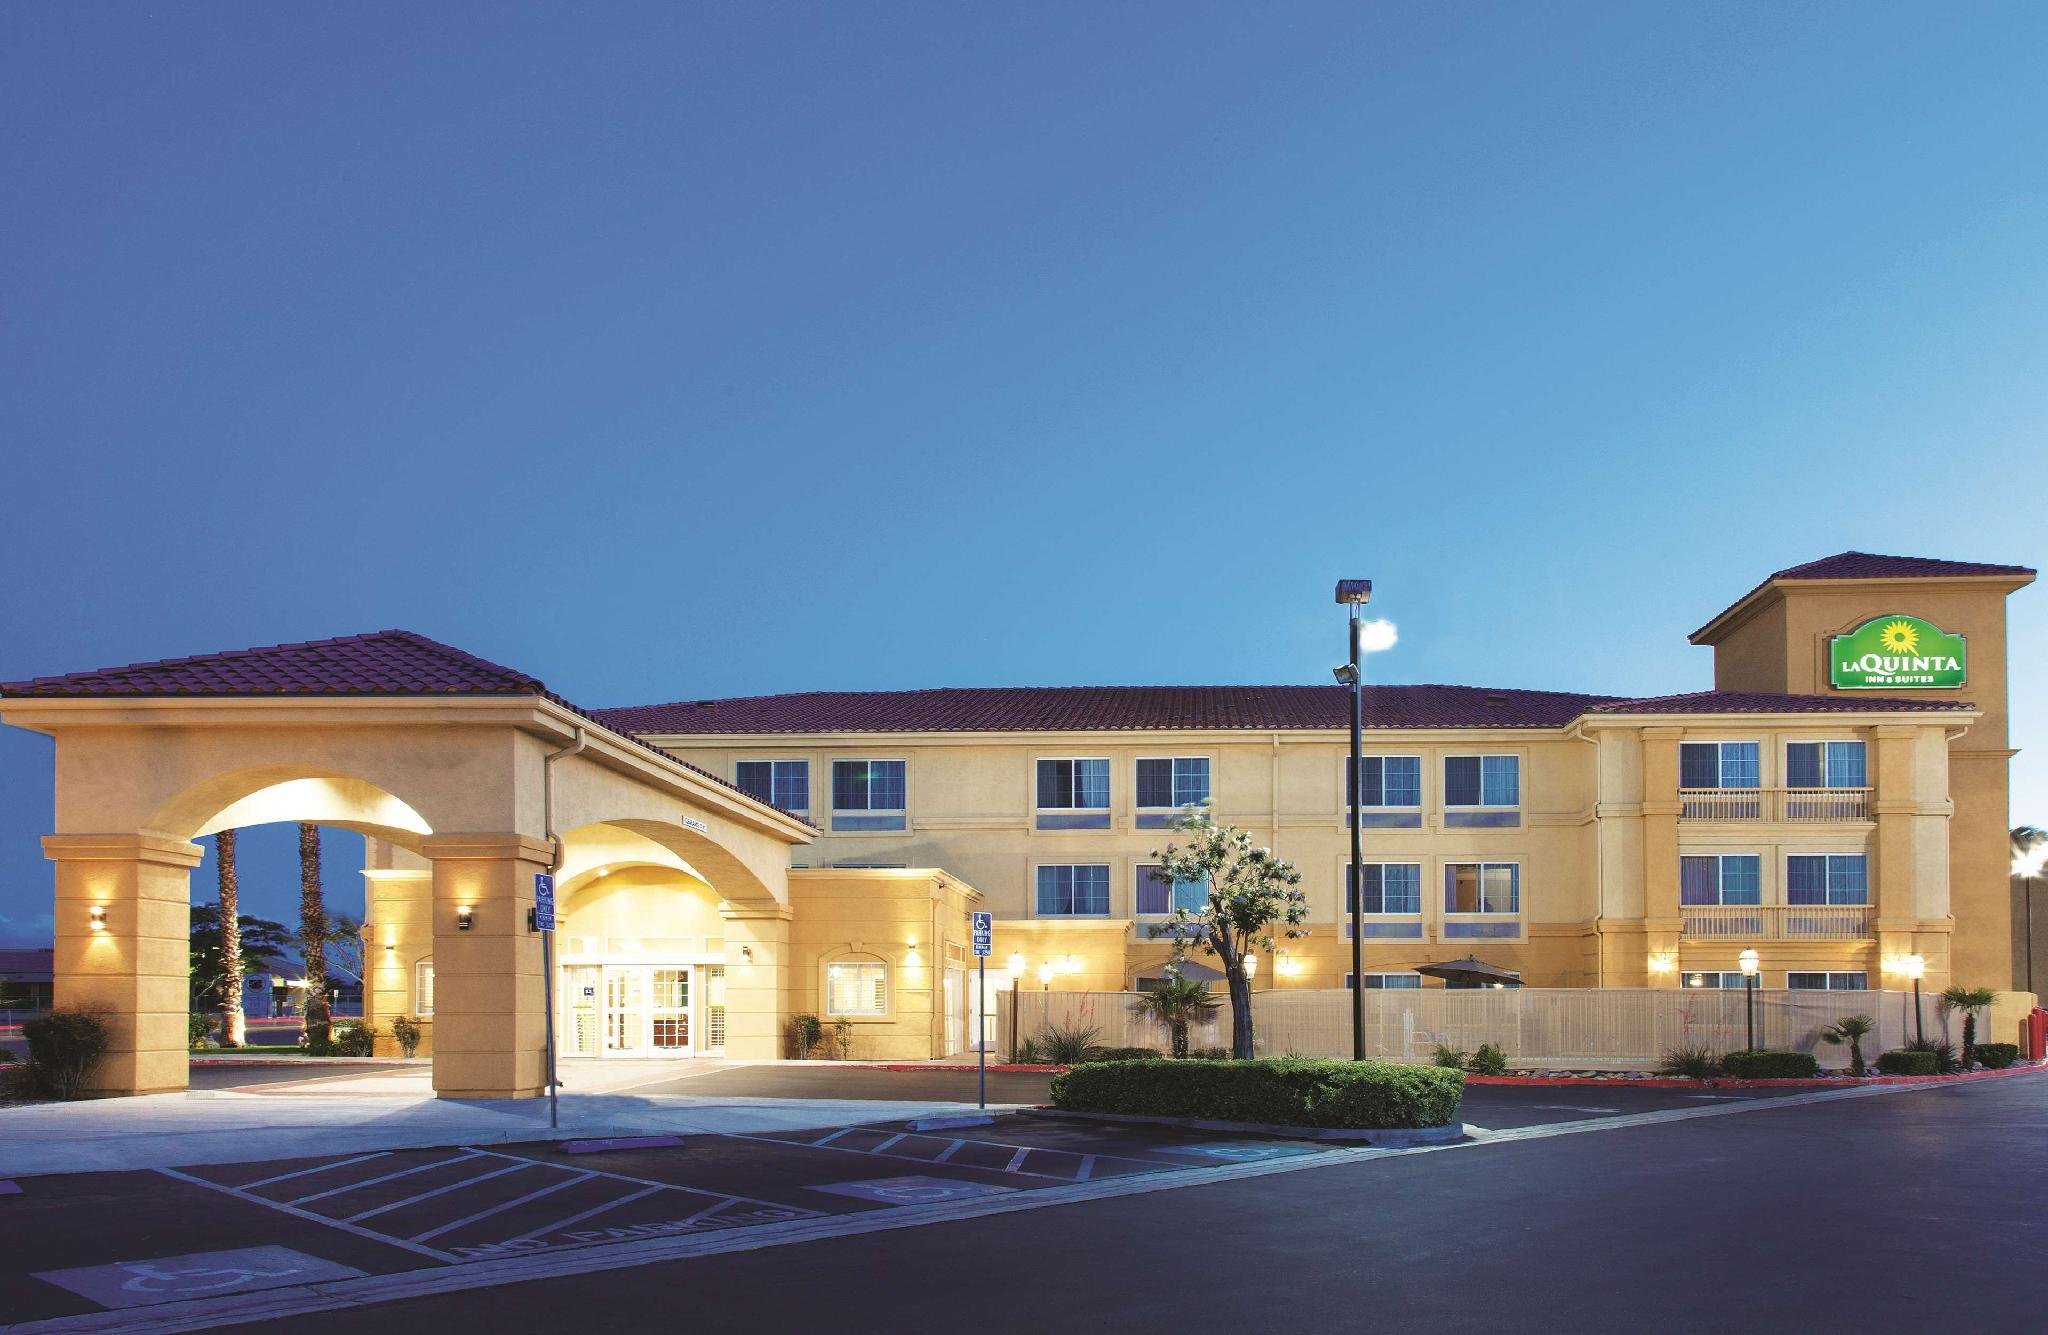 La Quinta Inn And Suites By Wyndham Hesperia Victorville